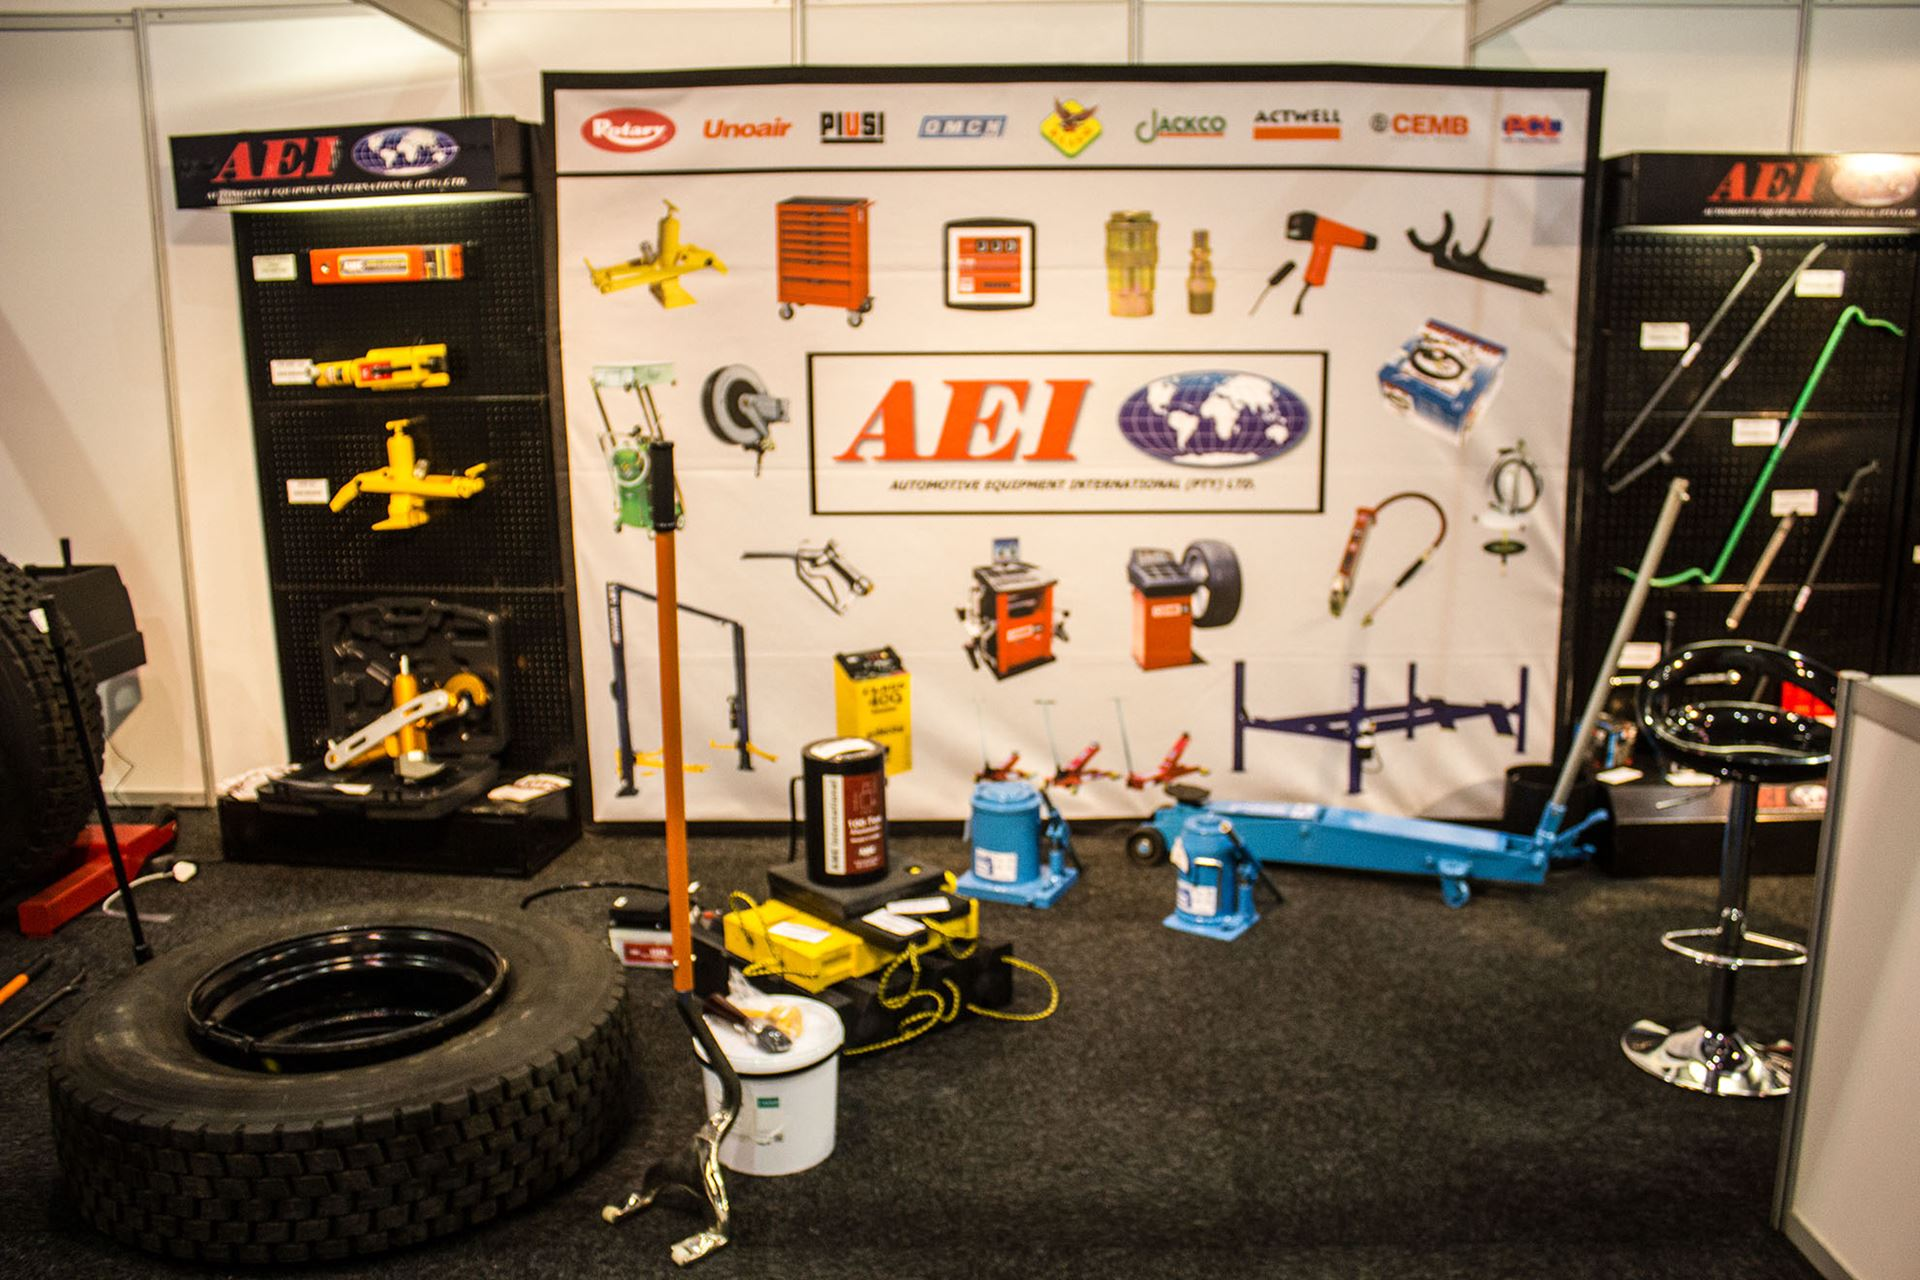 Tyre-Expo-South-Africa-2014-Automotive-Equipment-International-02